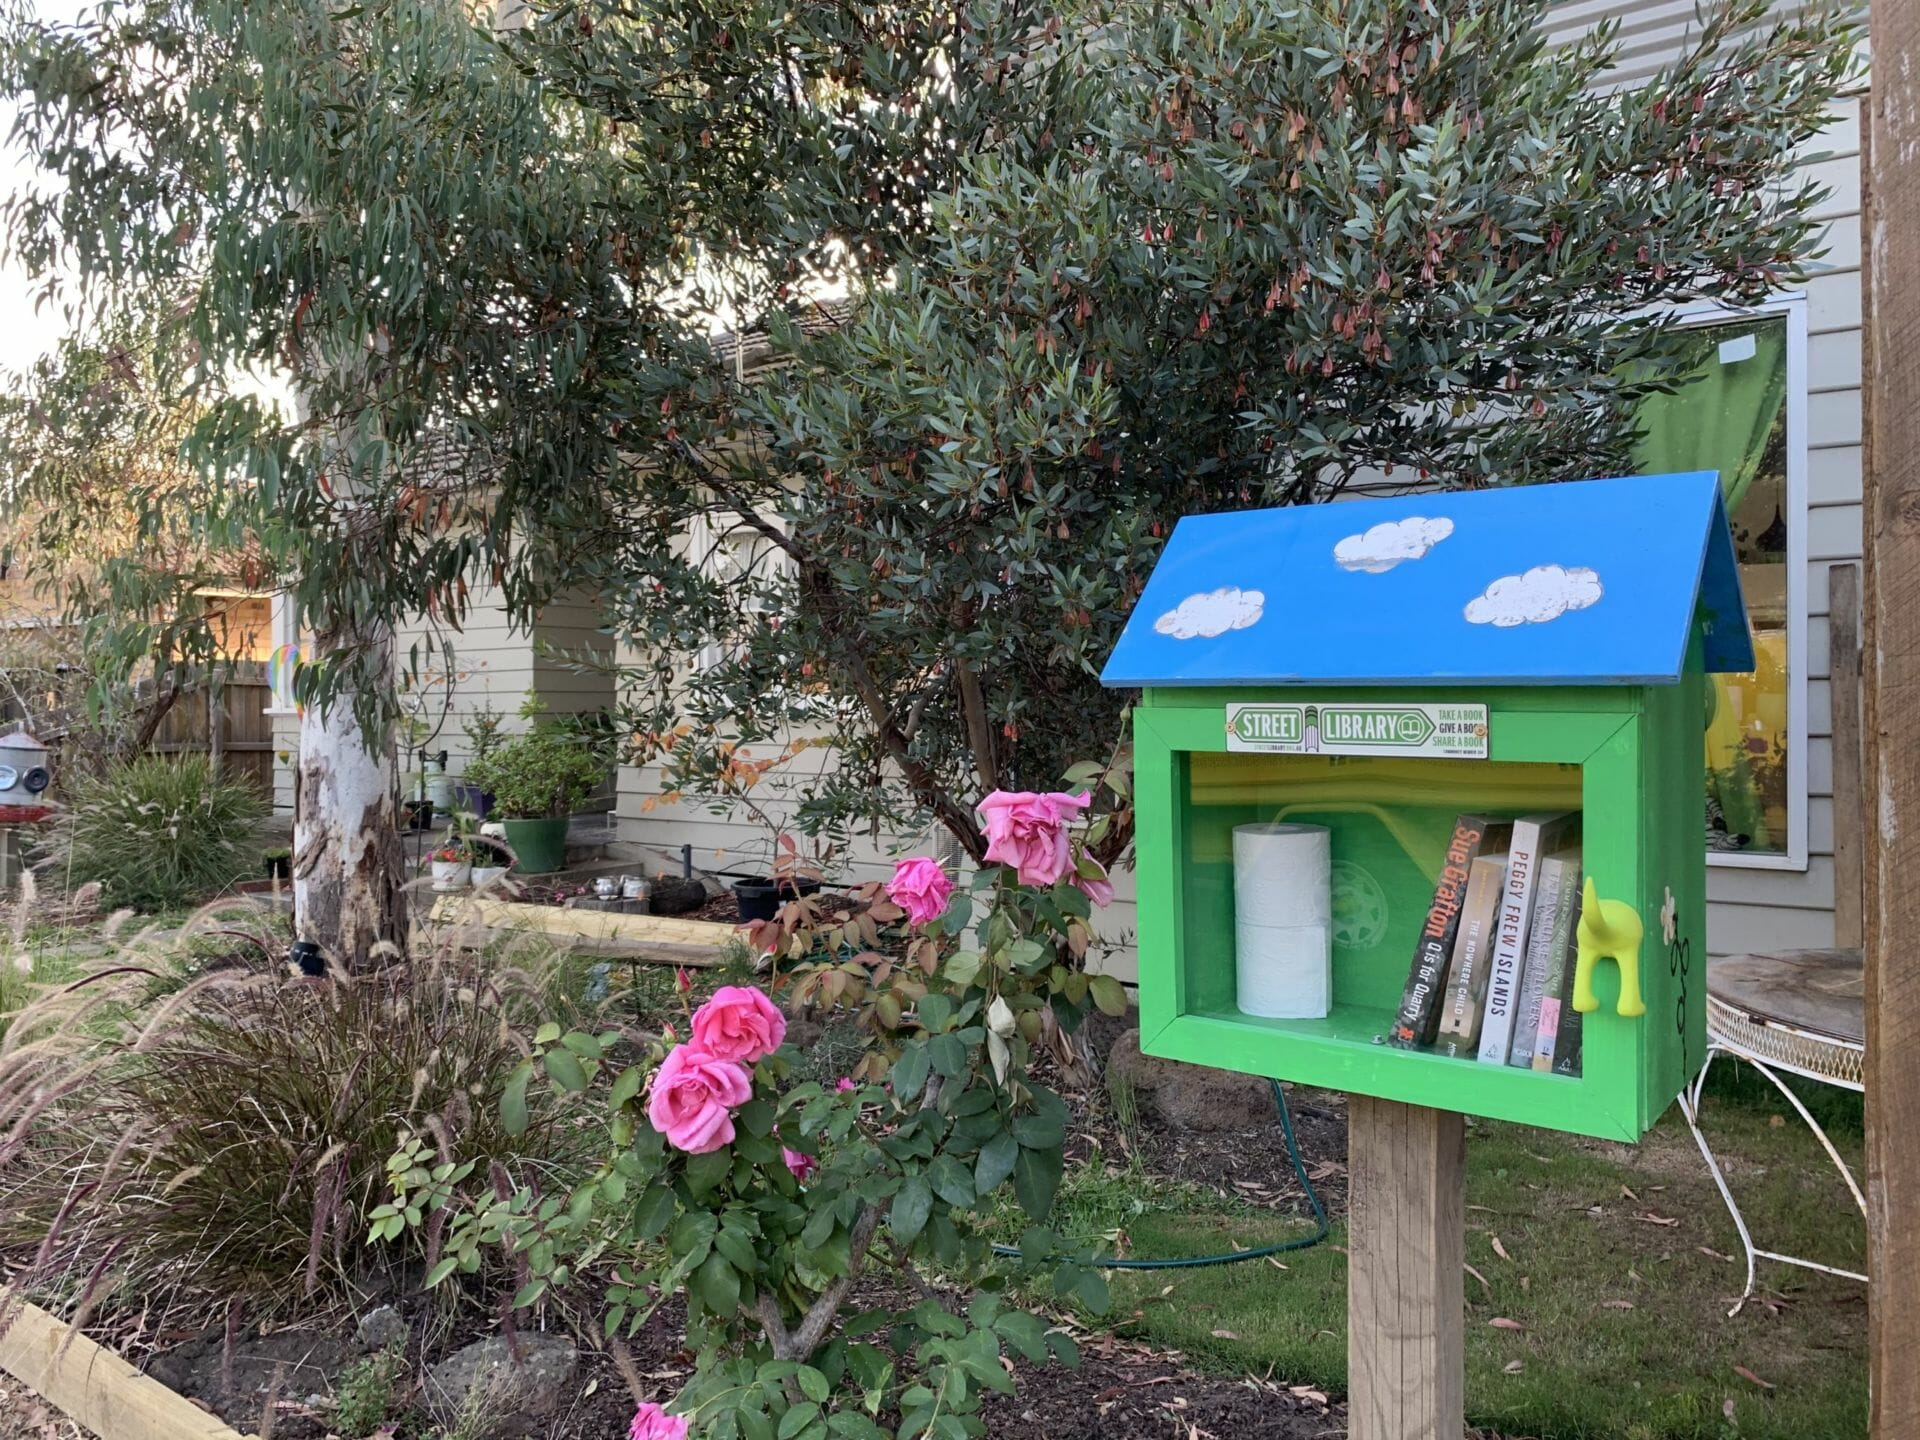 Daisy's Little Library